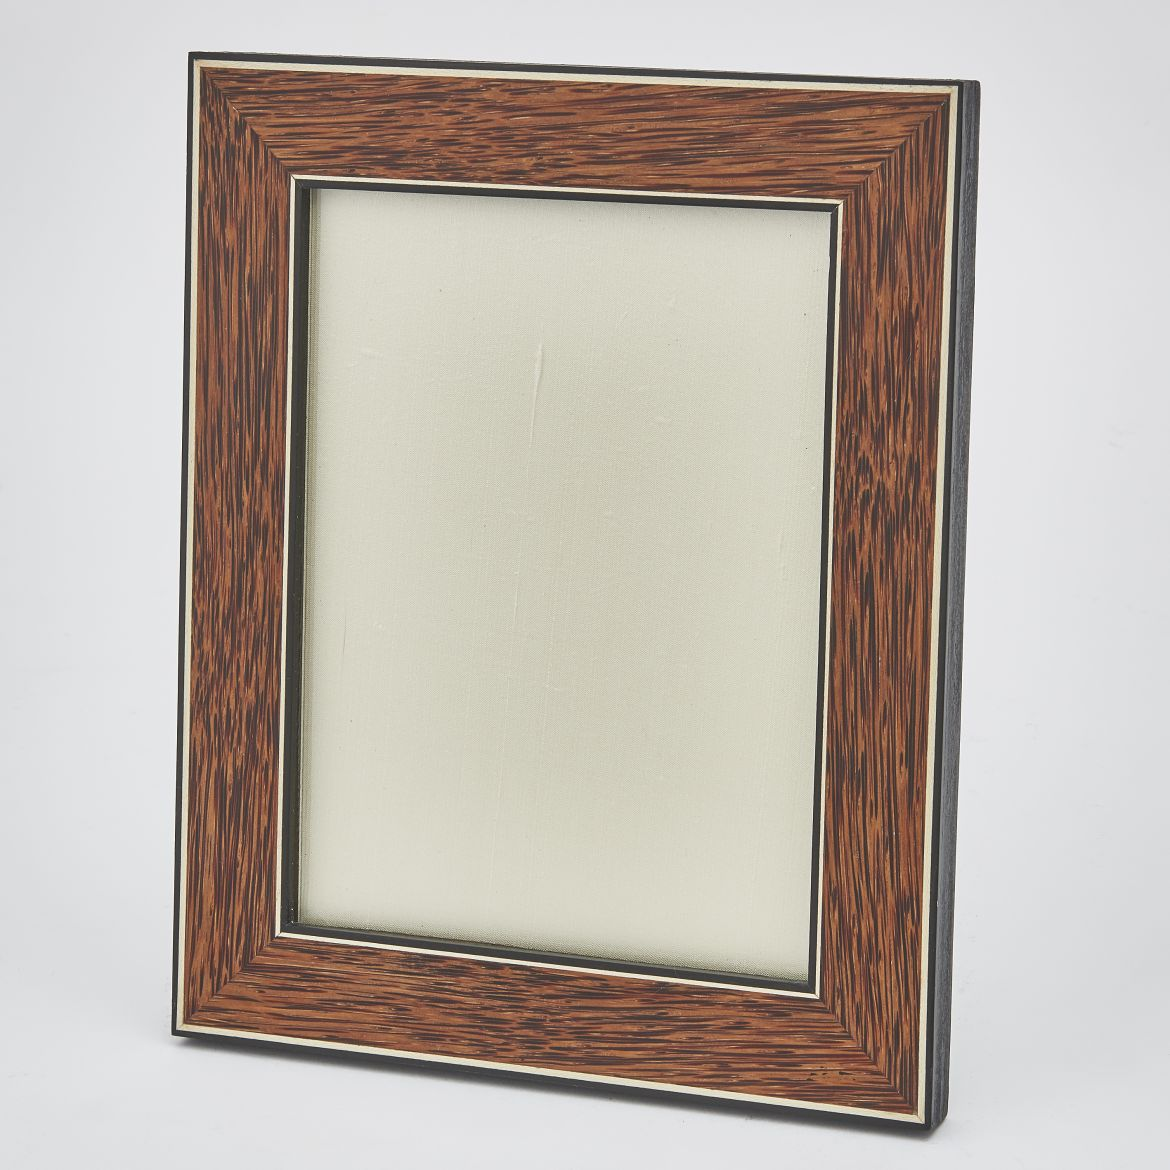 Palmwood Frame Edged in Ebony